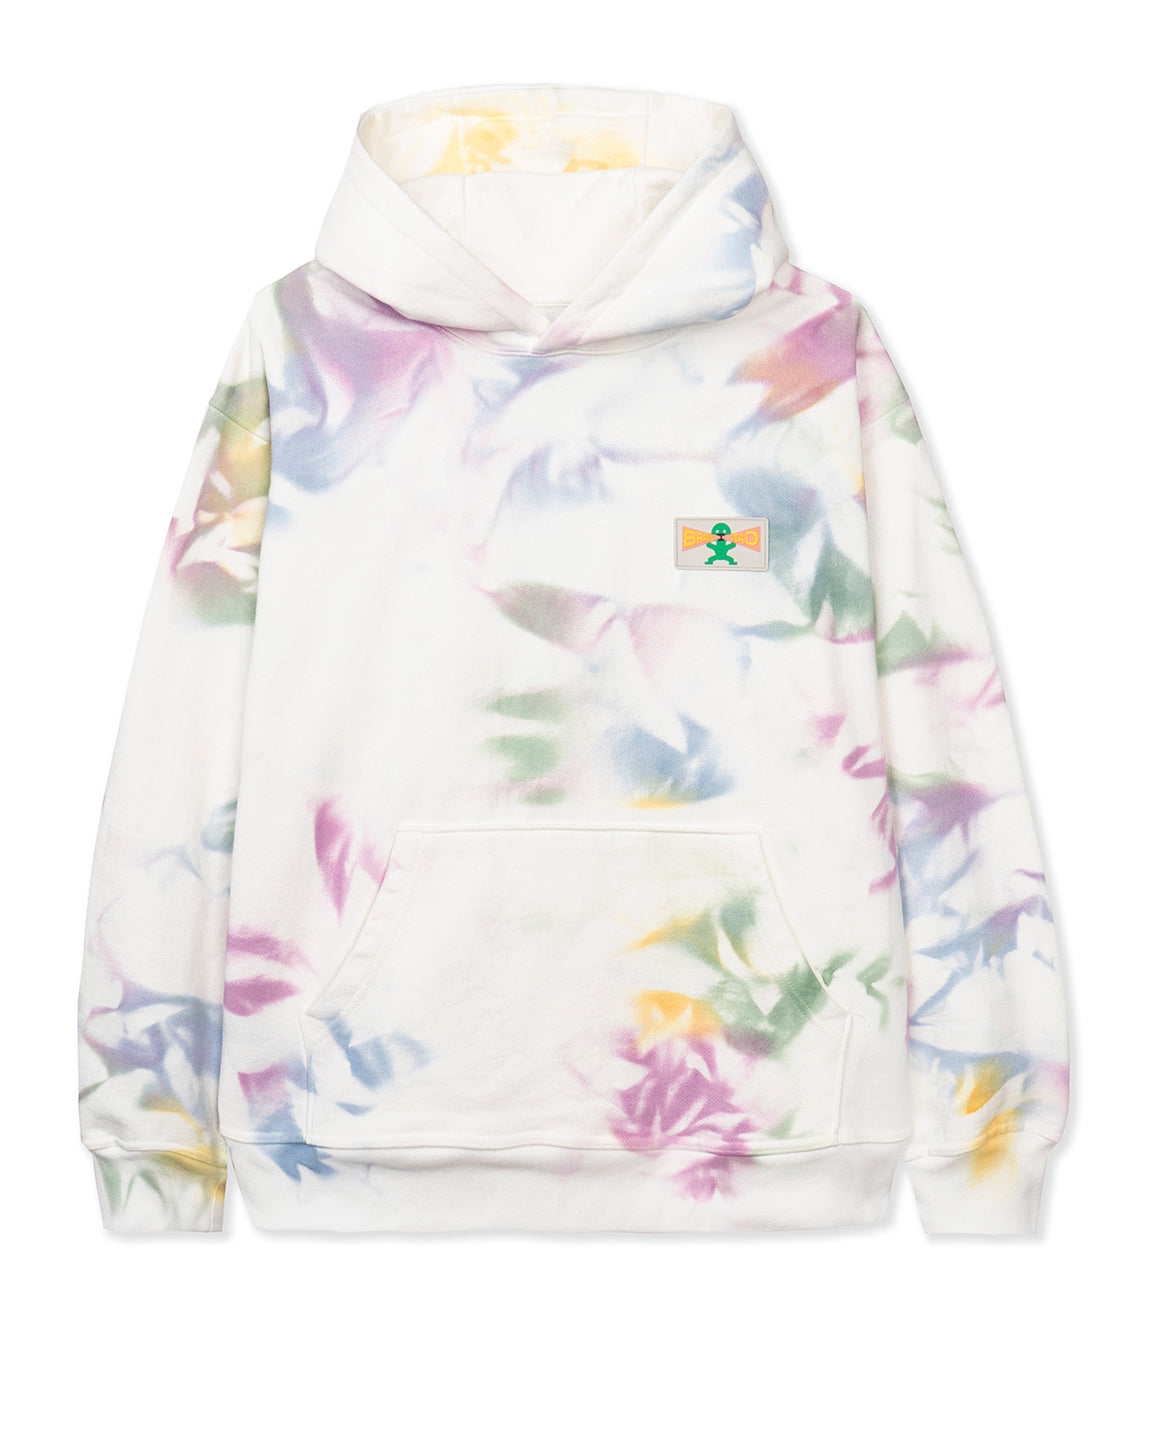 Shout PVC Patch Hooded Sweatshirt - Dry Pigment Dye